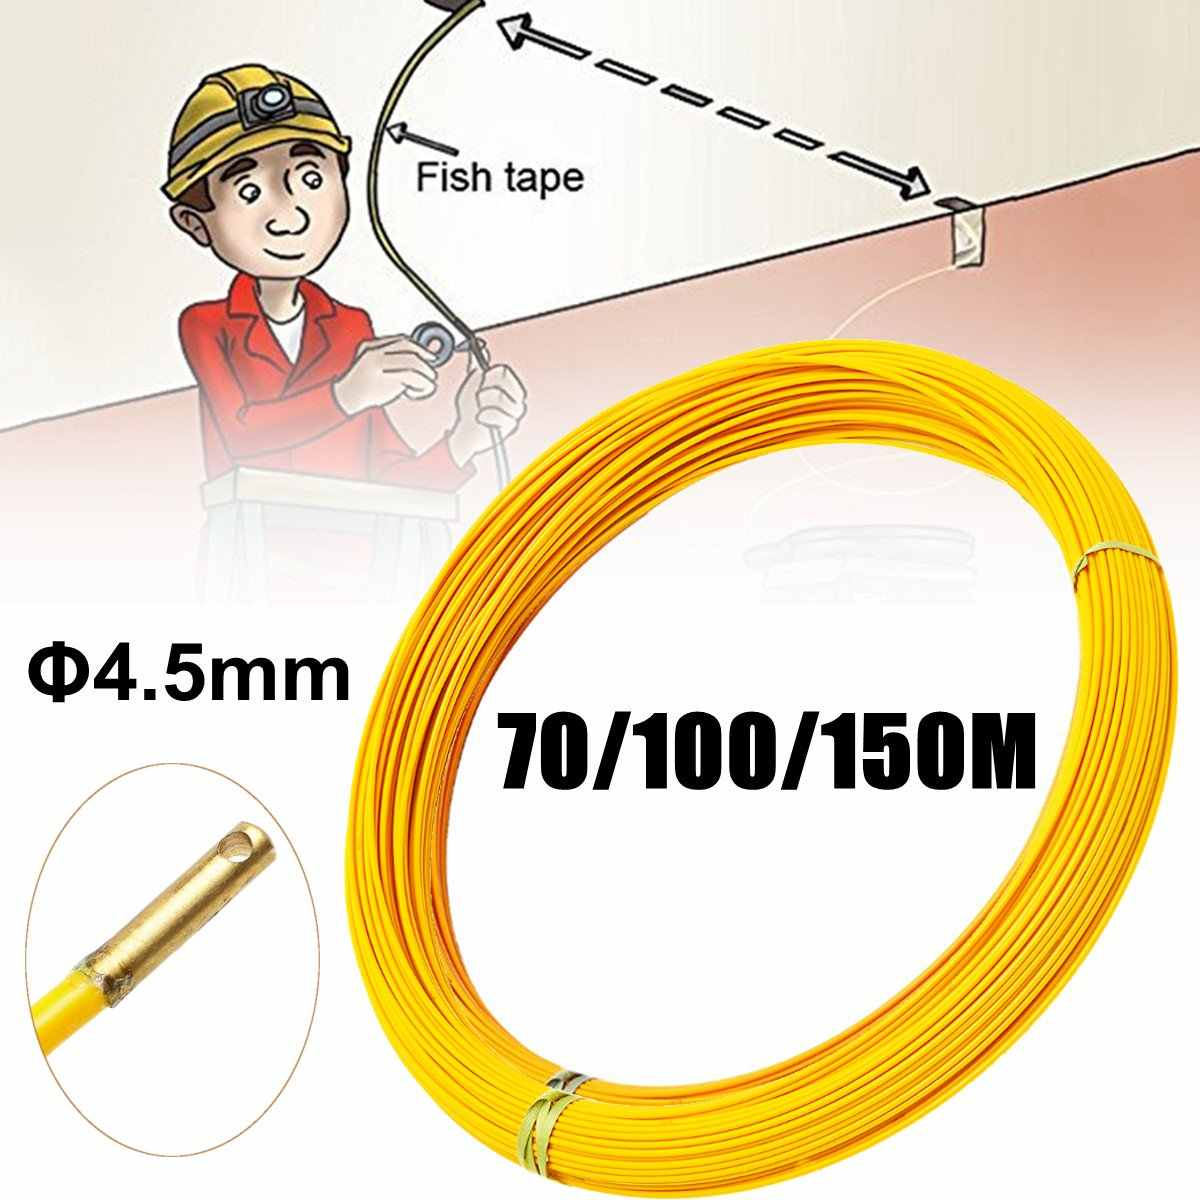 4.5mm Fiberglass Cable Puller Fish Tape Reel Conduit Ducting Rodder Pulling Puller Guide Extractor Electrician 70M/100M/150M